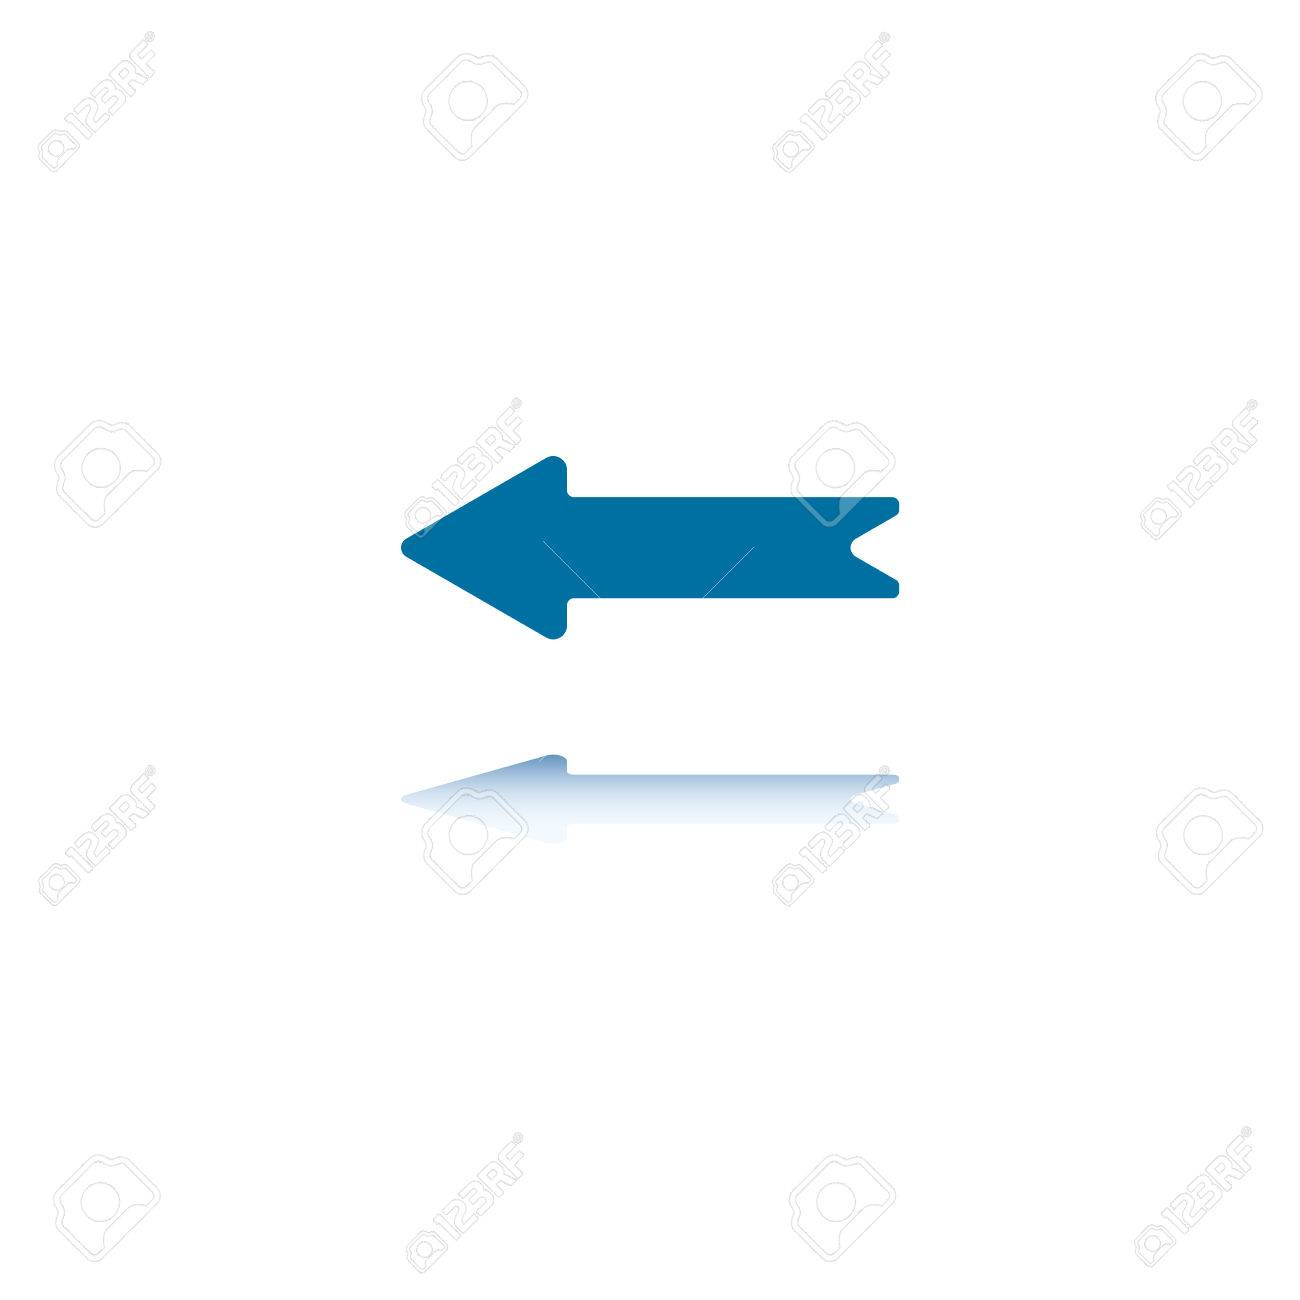 Horizontal Arrow Pointing Left With Reflection on Bottom Plane Stock Vector - 3455913